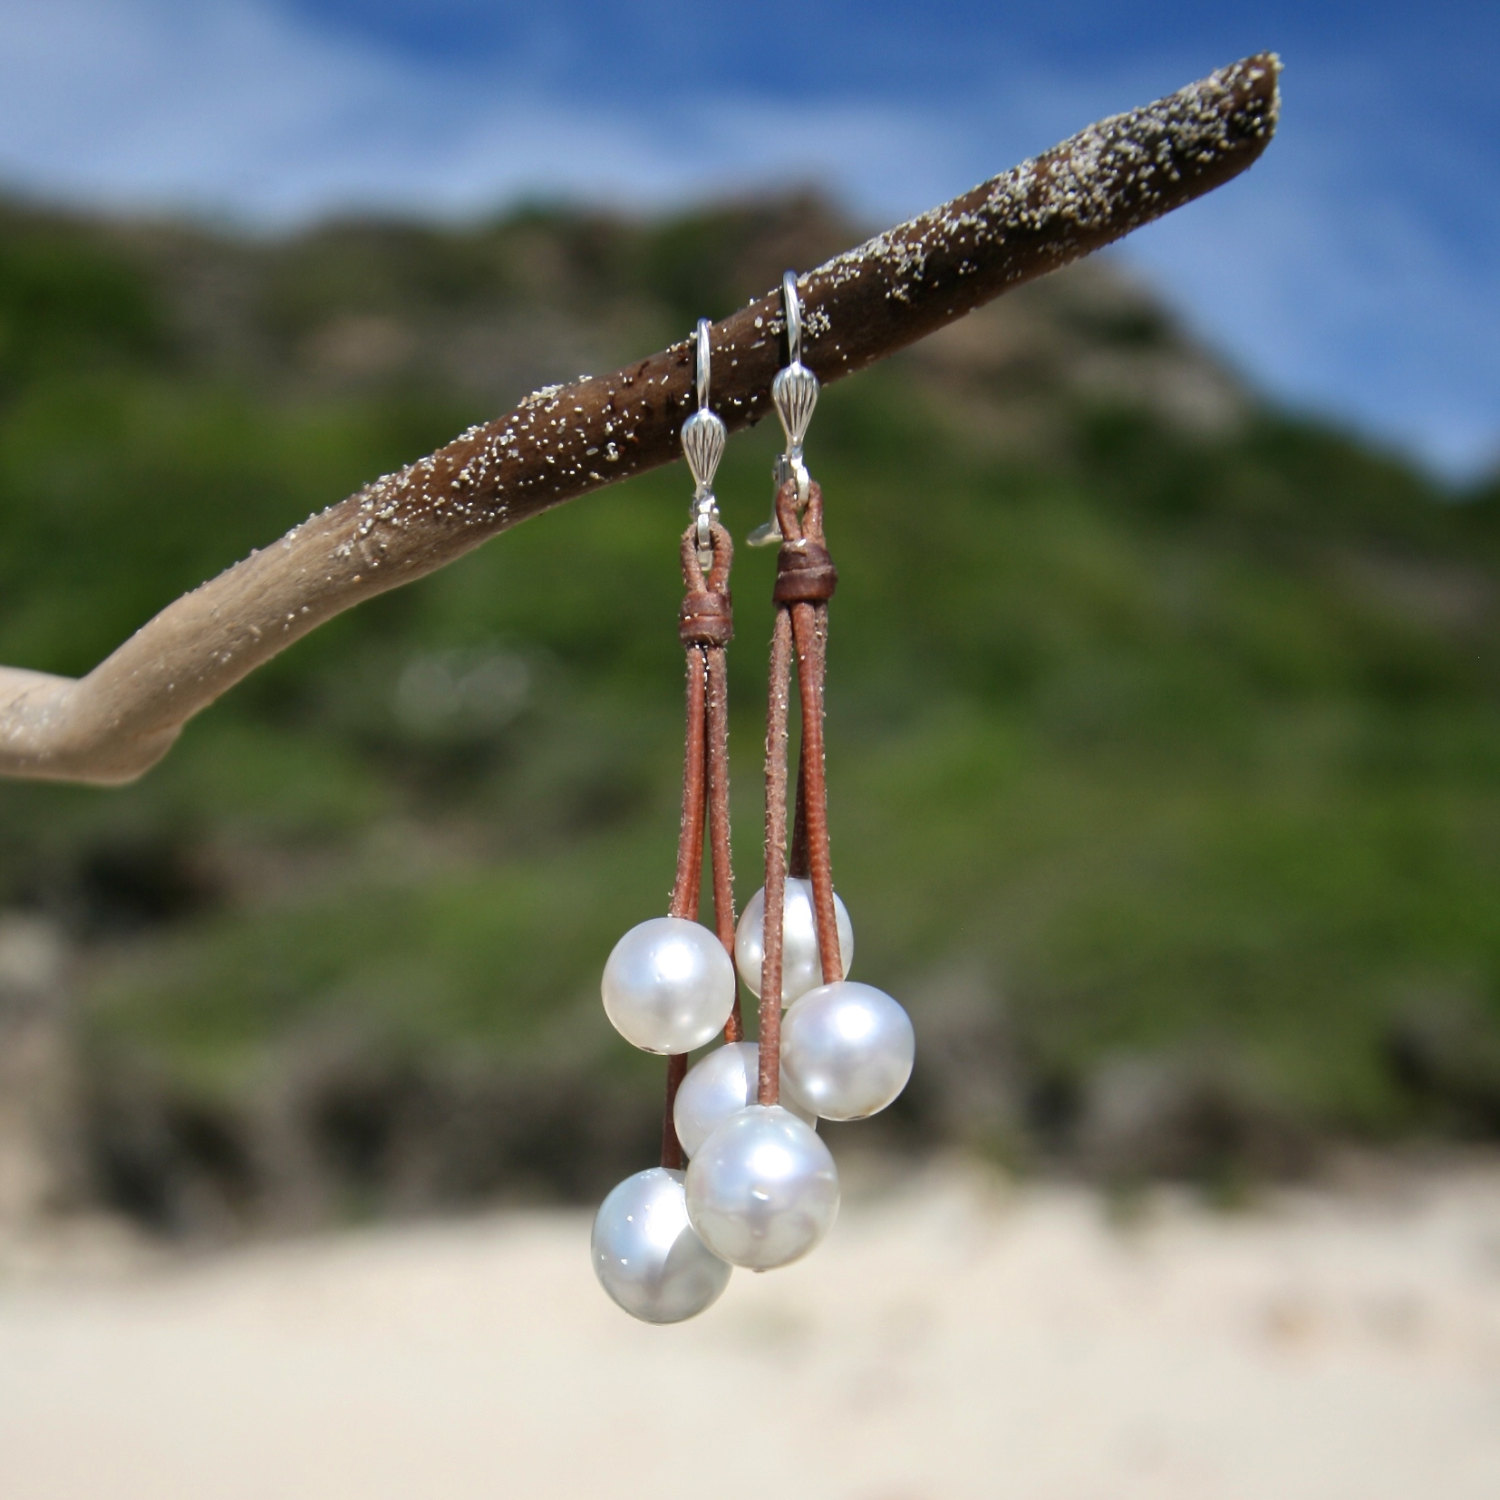 St barth white pearls shop earrings